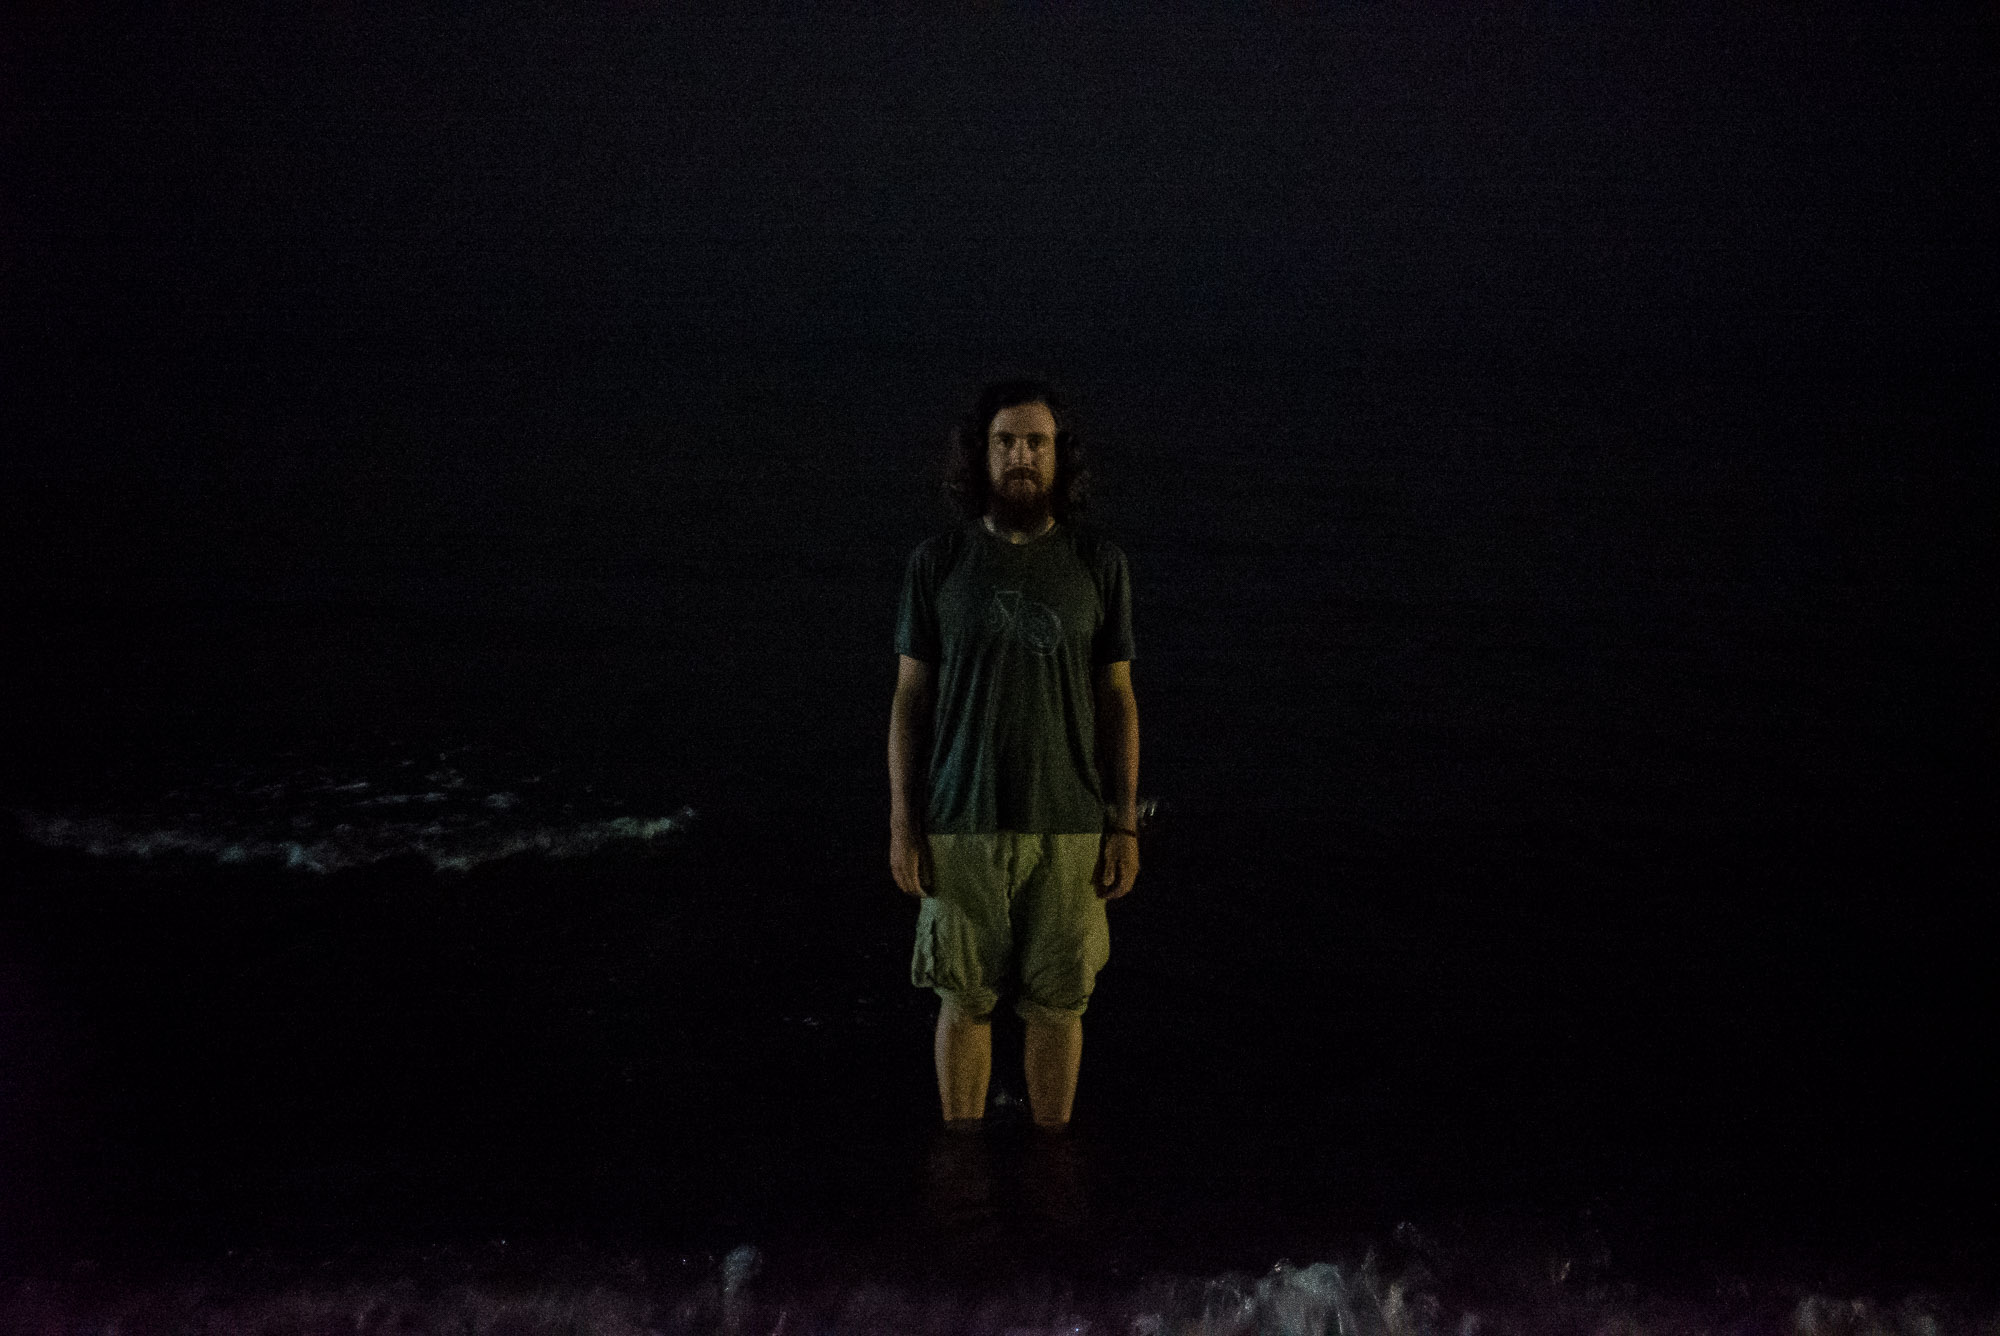 in the Caspian Sea at night